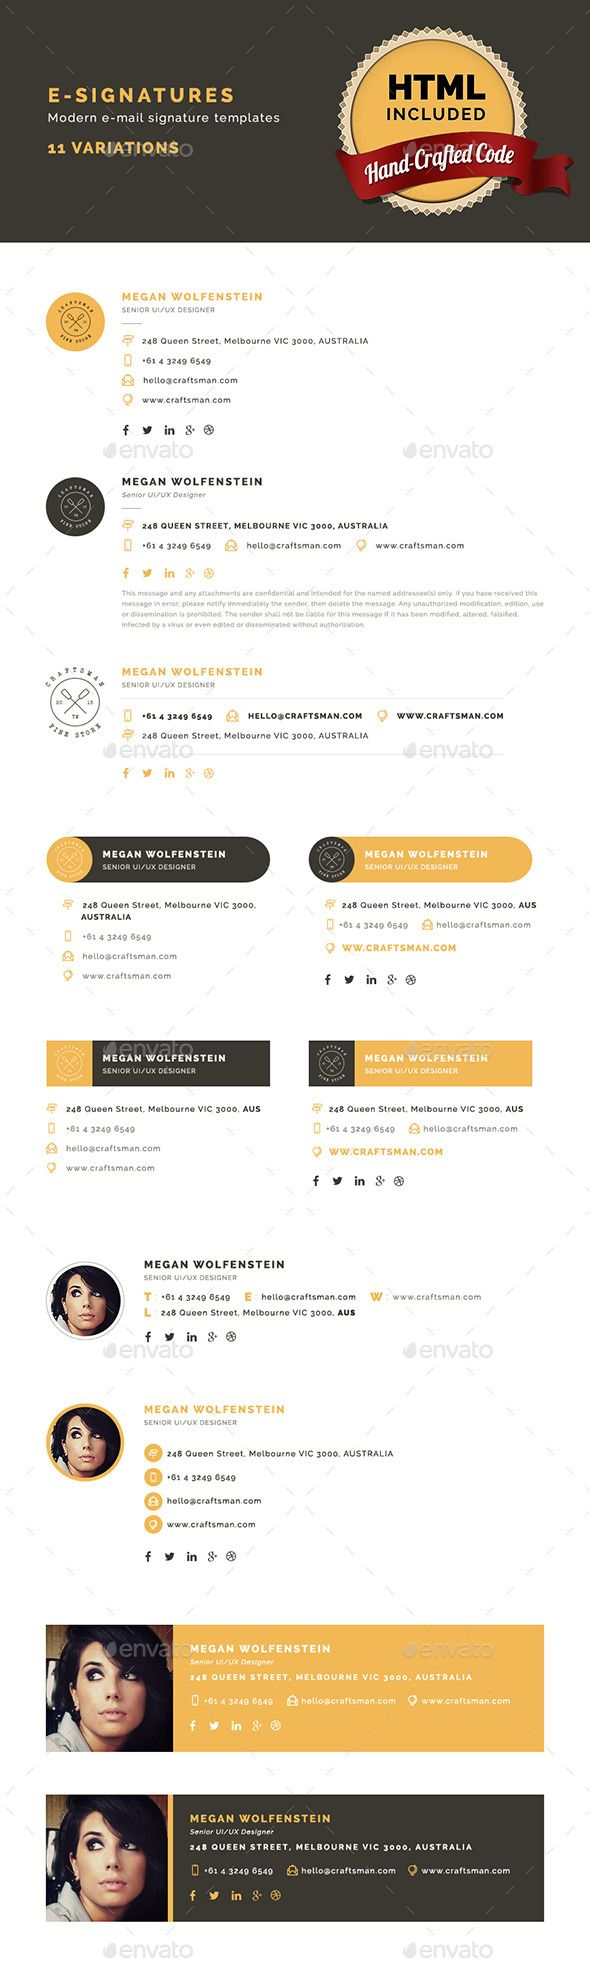 E-Signatures - Modern E-mail Signature Design Templates - Web Element Design Template PSD. Download here: https://graphicriver.net/item/esignatures-modern-email-signature-templates/10199109?ref=yinkira